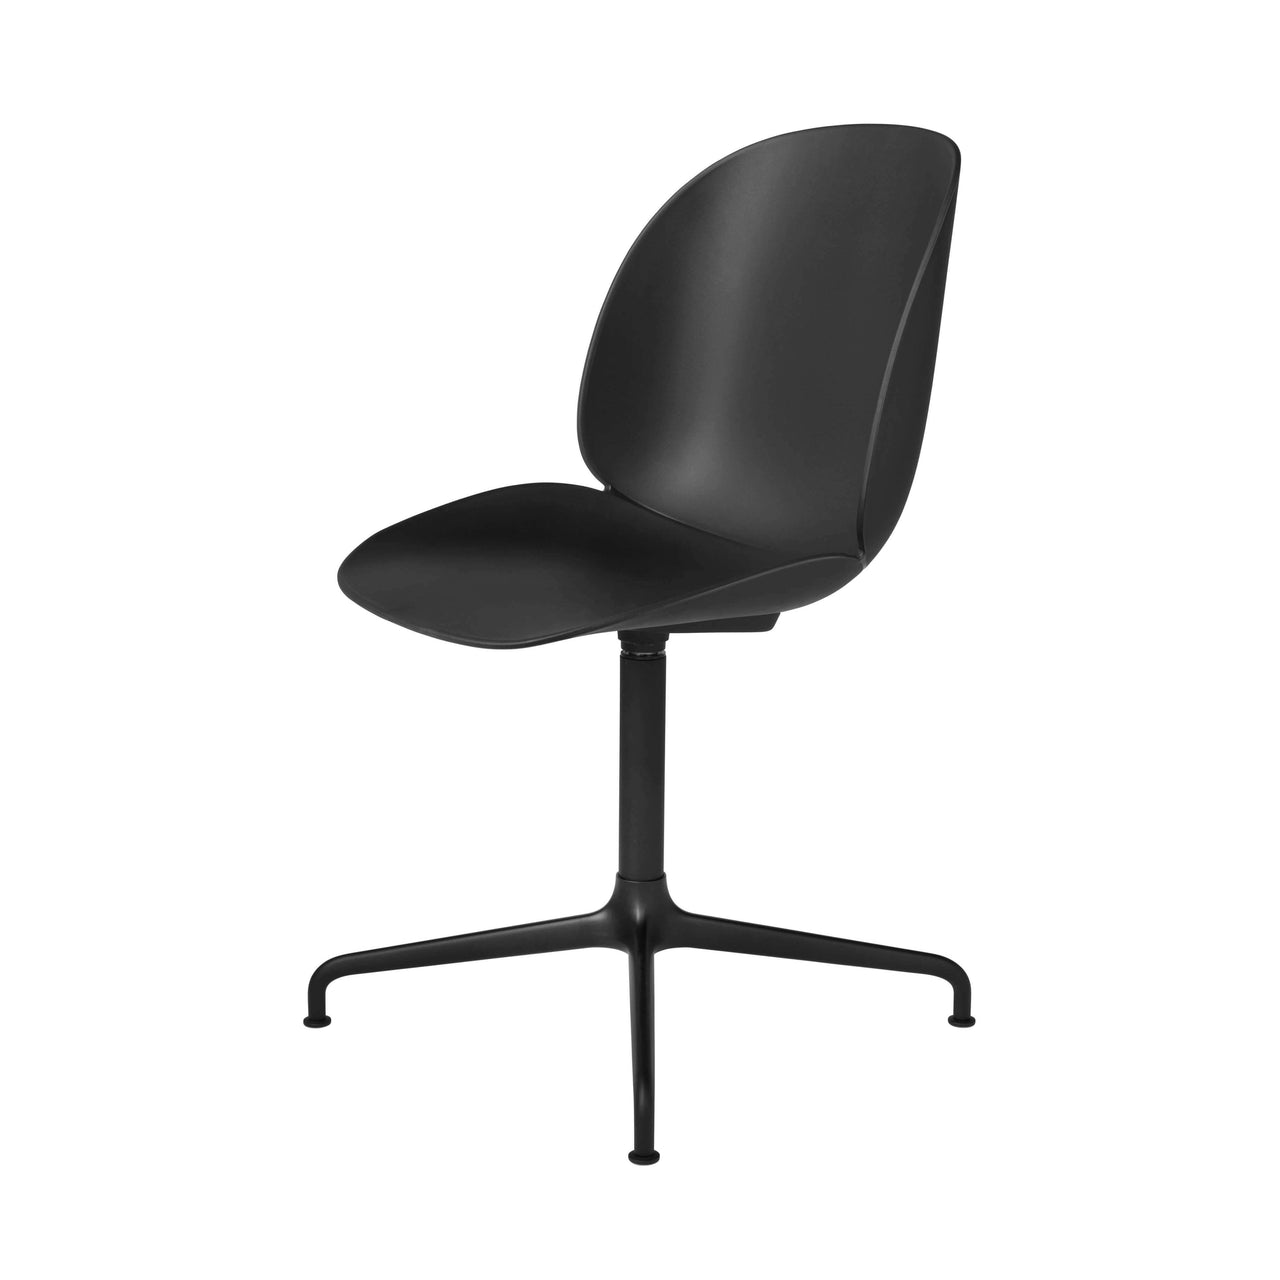 Beetle Meeting Chair: 4-Star Swivel Base: Black + Black Matte Base + Plastic Glides